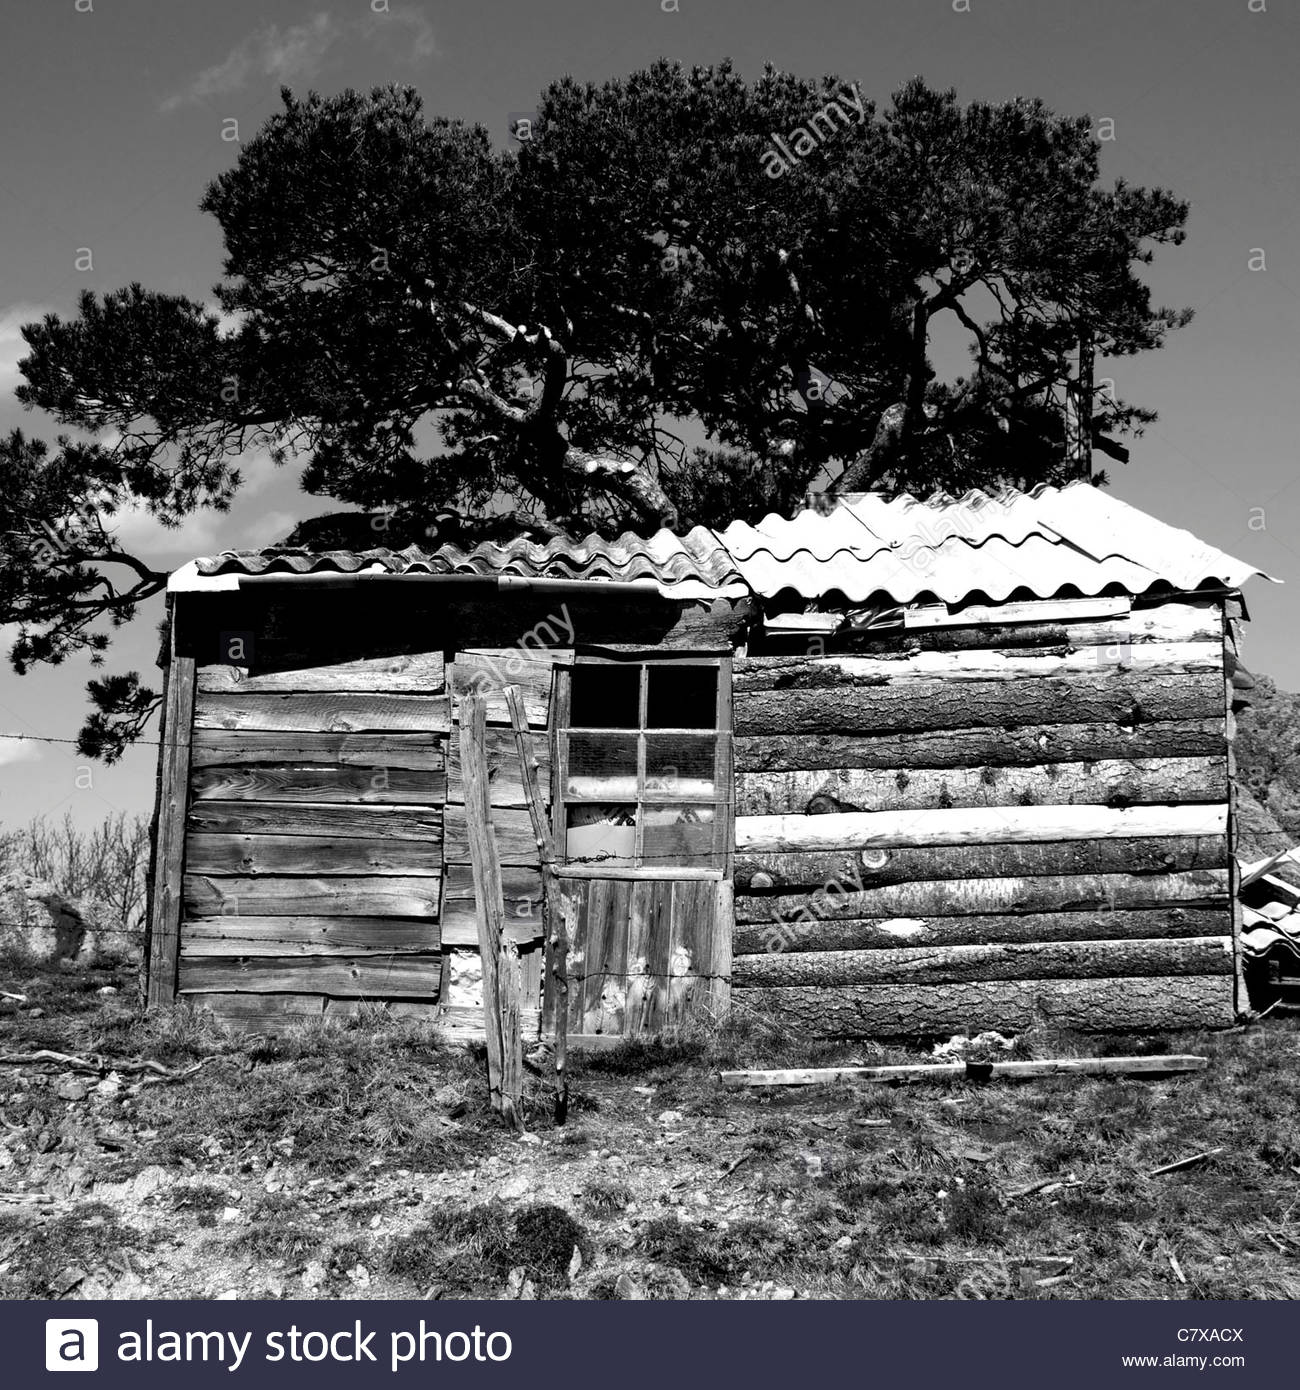 Old abandoned shack with tree in rural setting - Stock Image